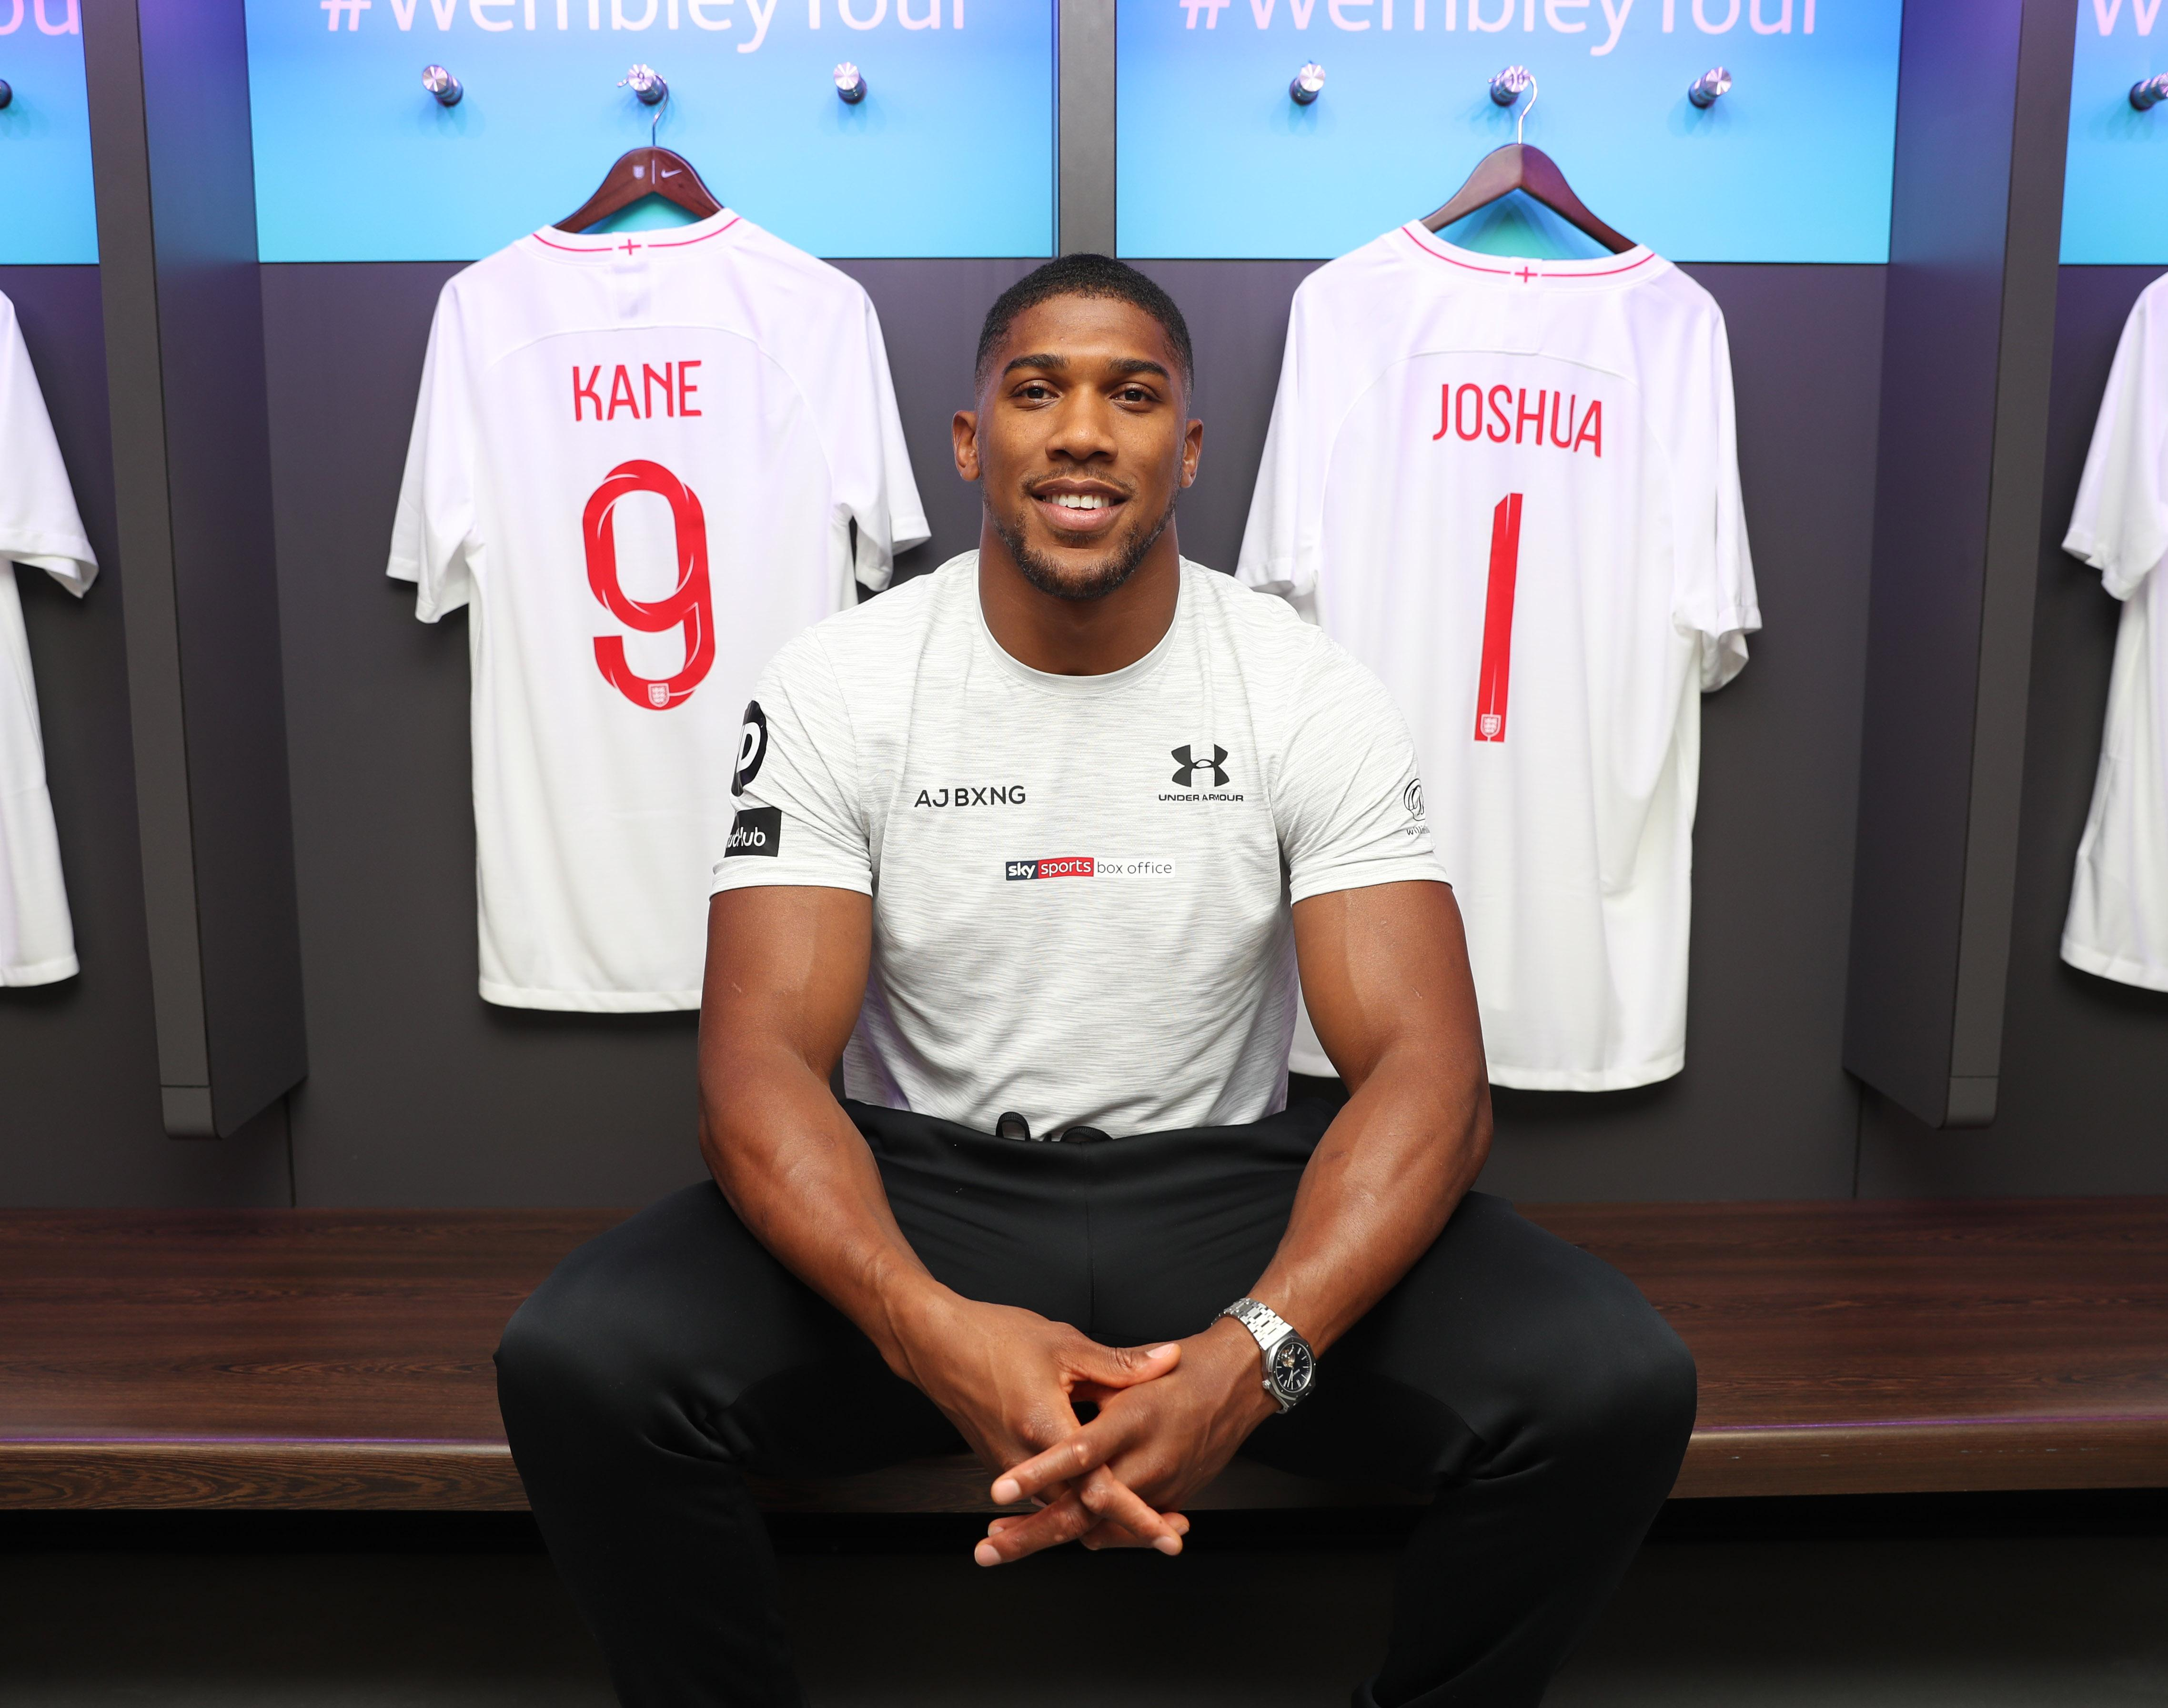 AJ has previously spoken of how his loyalties have been torn between England and Nigeria - but today he was happy to be placed alongside Harry Kane